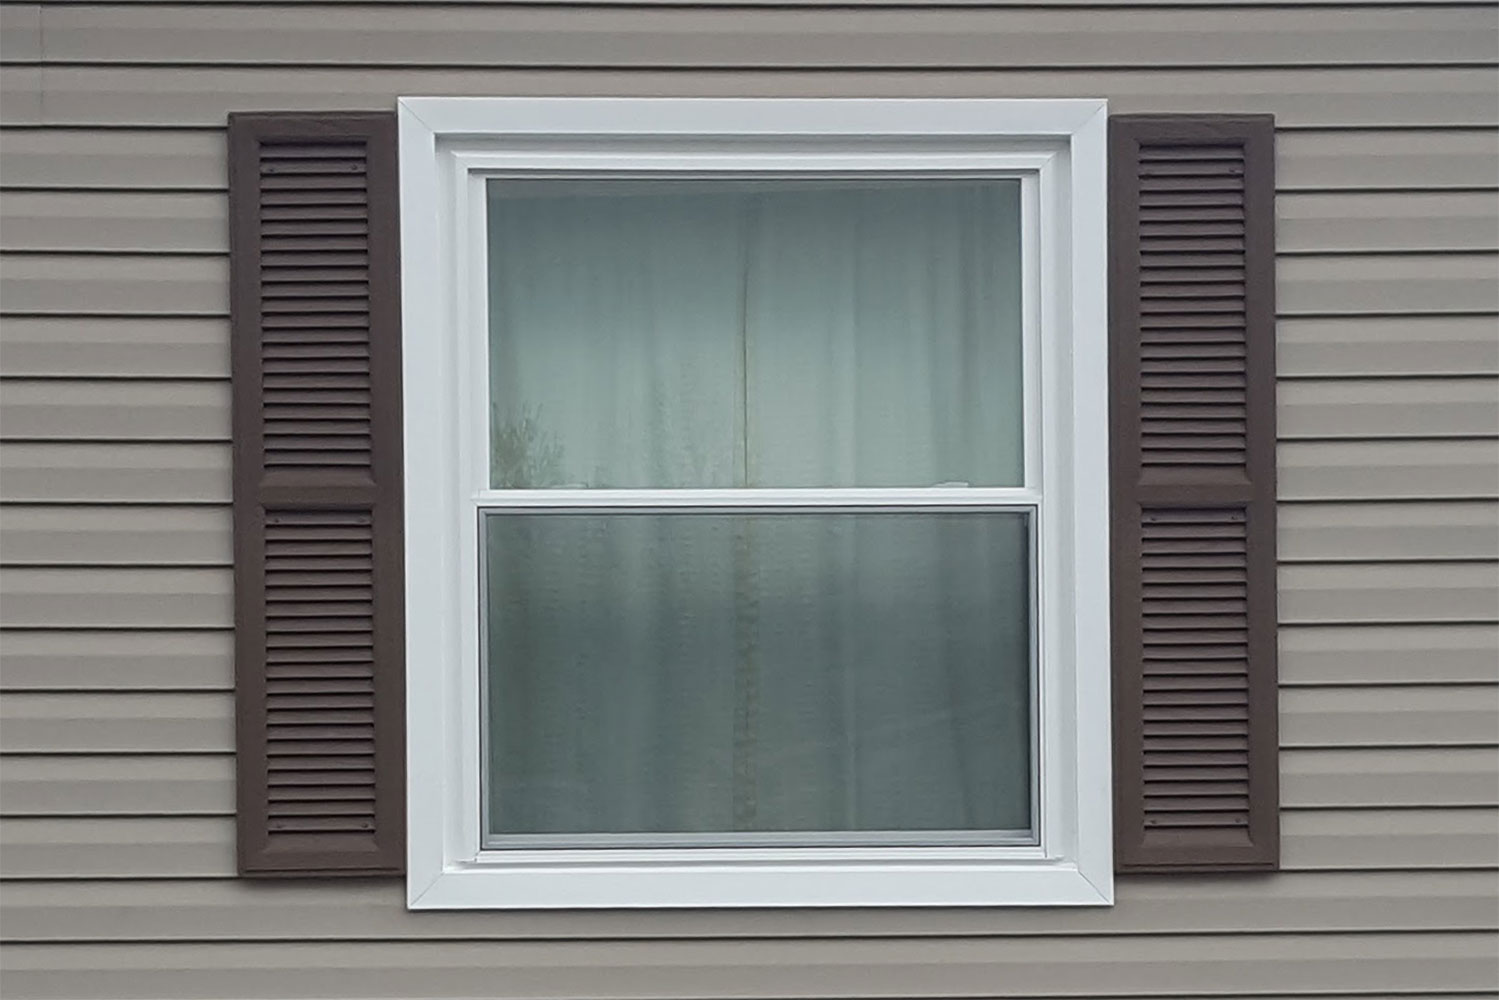 After - Double hung window